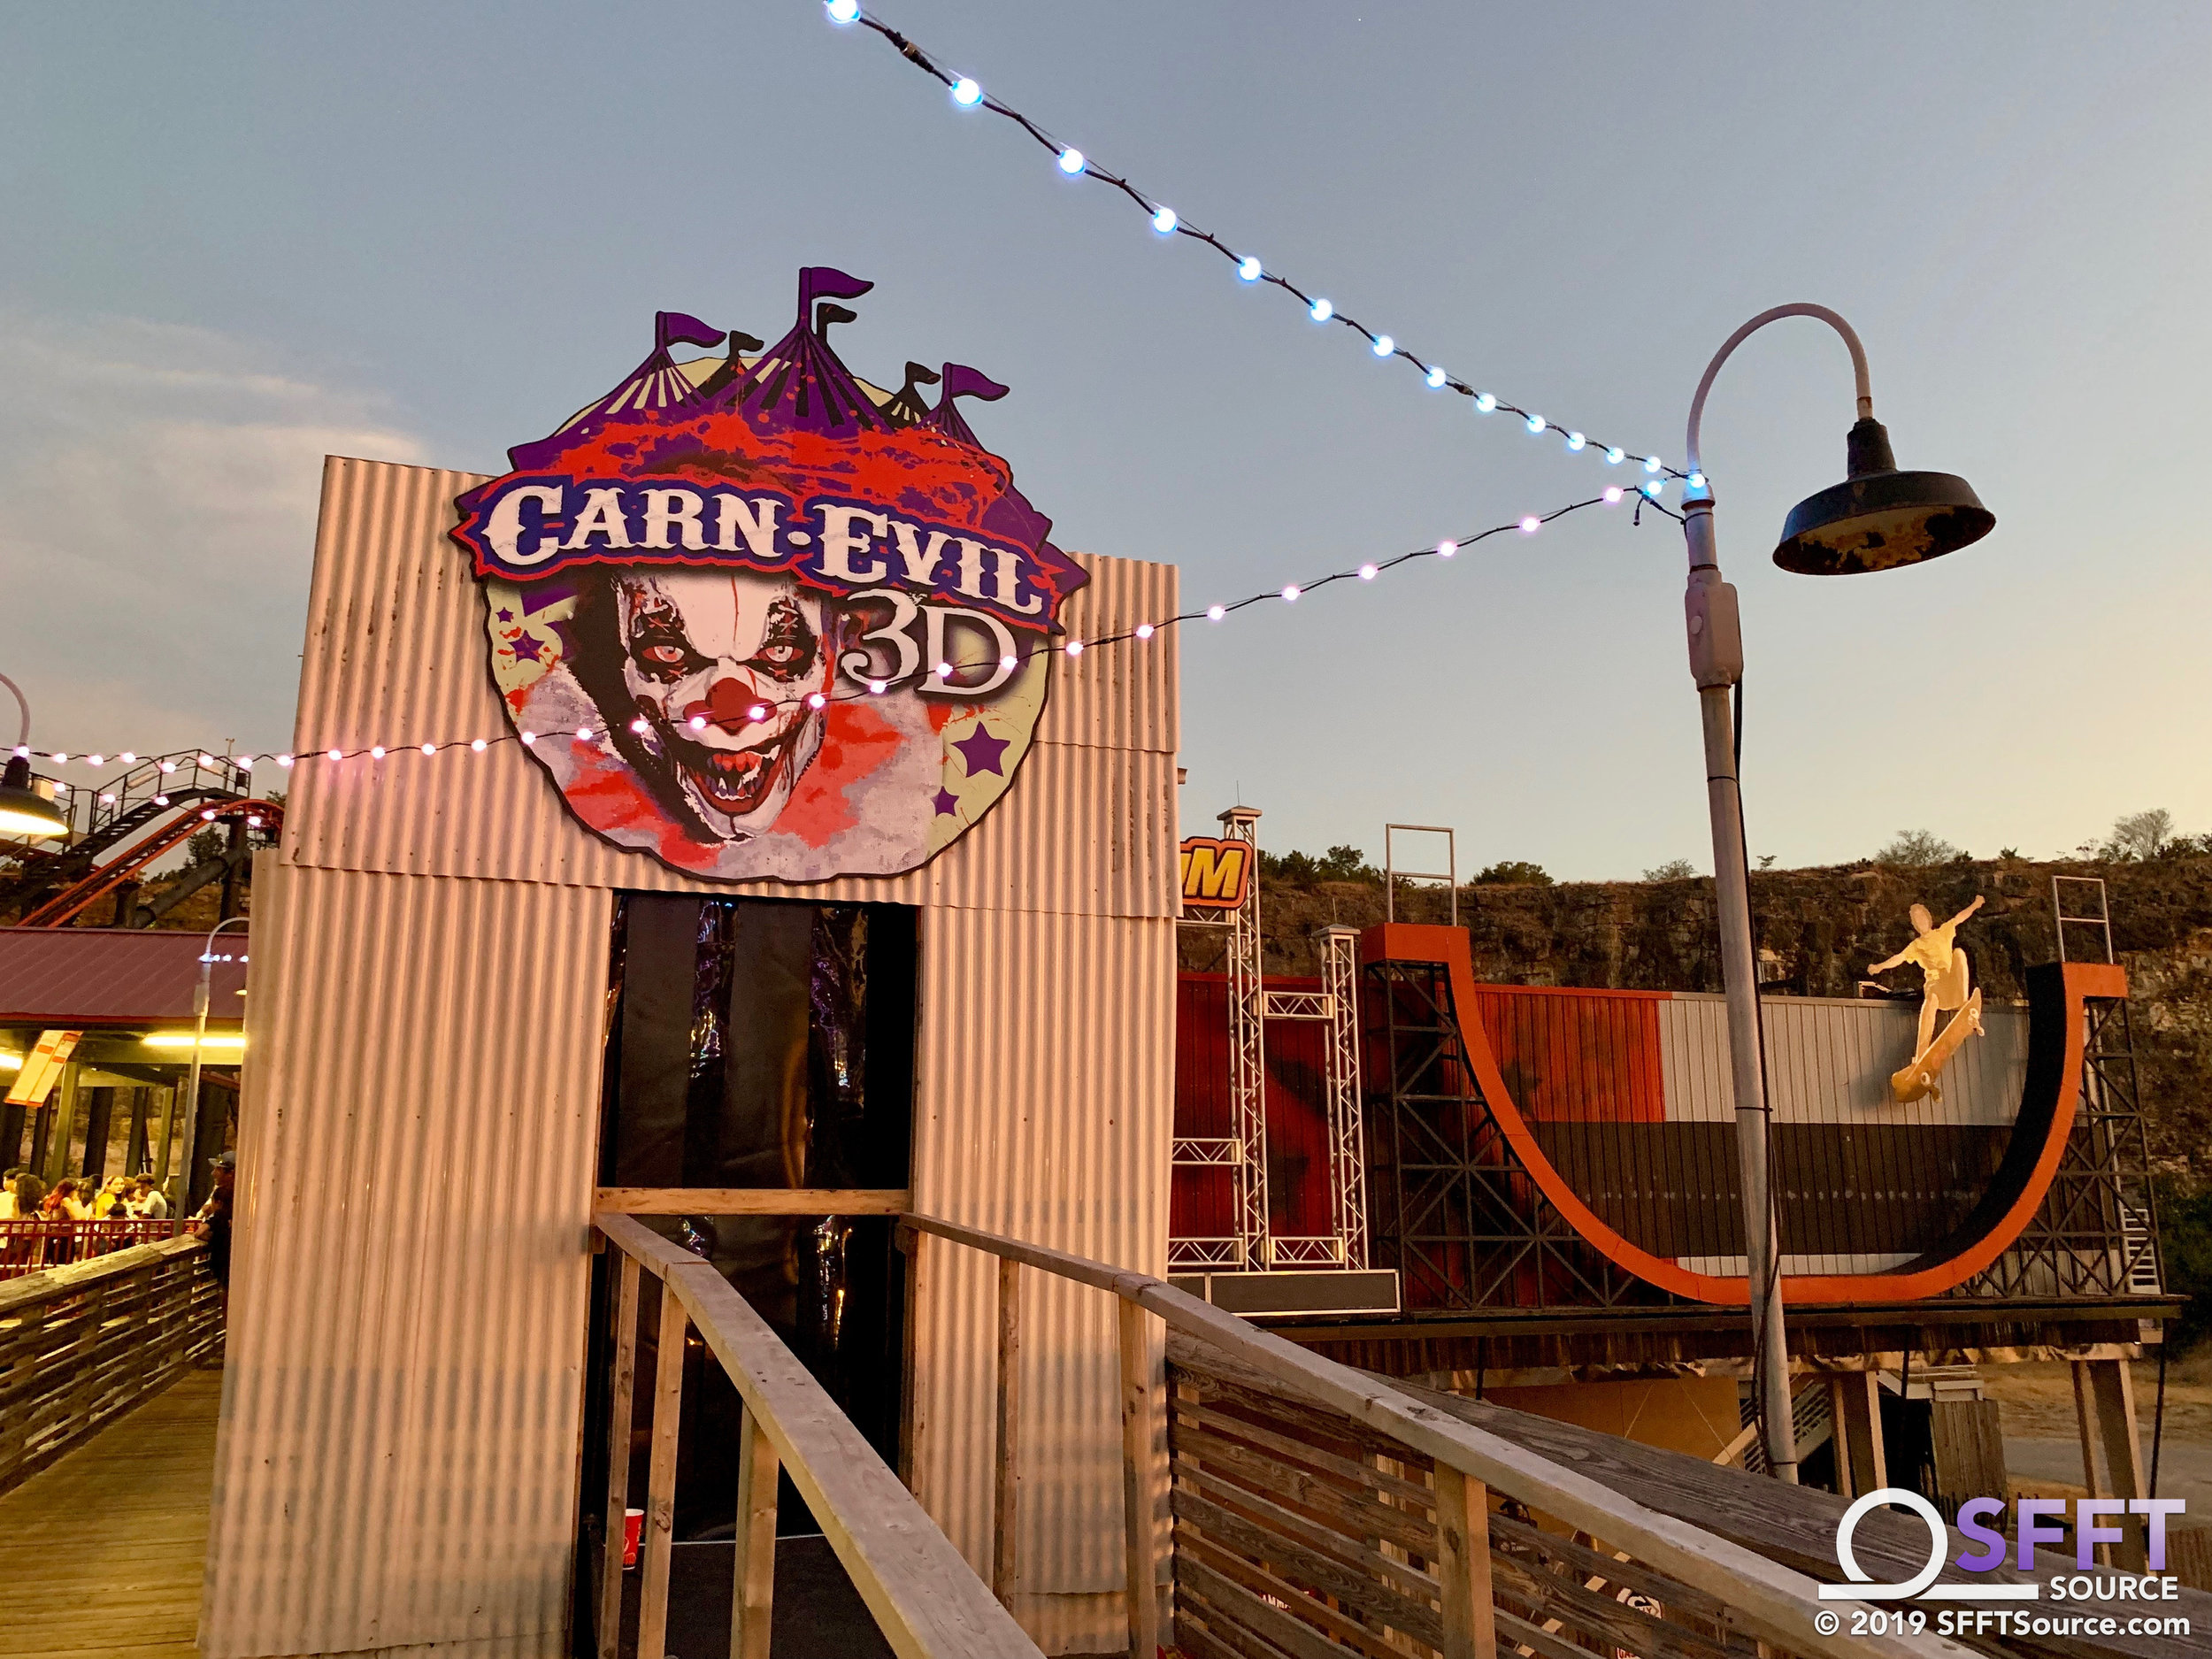 The main entrance to the CarnEvil 3D house has been constructed on Fiesta Bay Boardwalk.